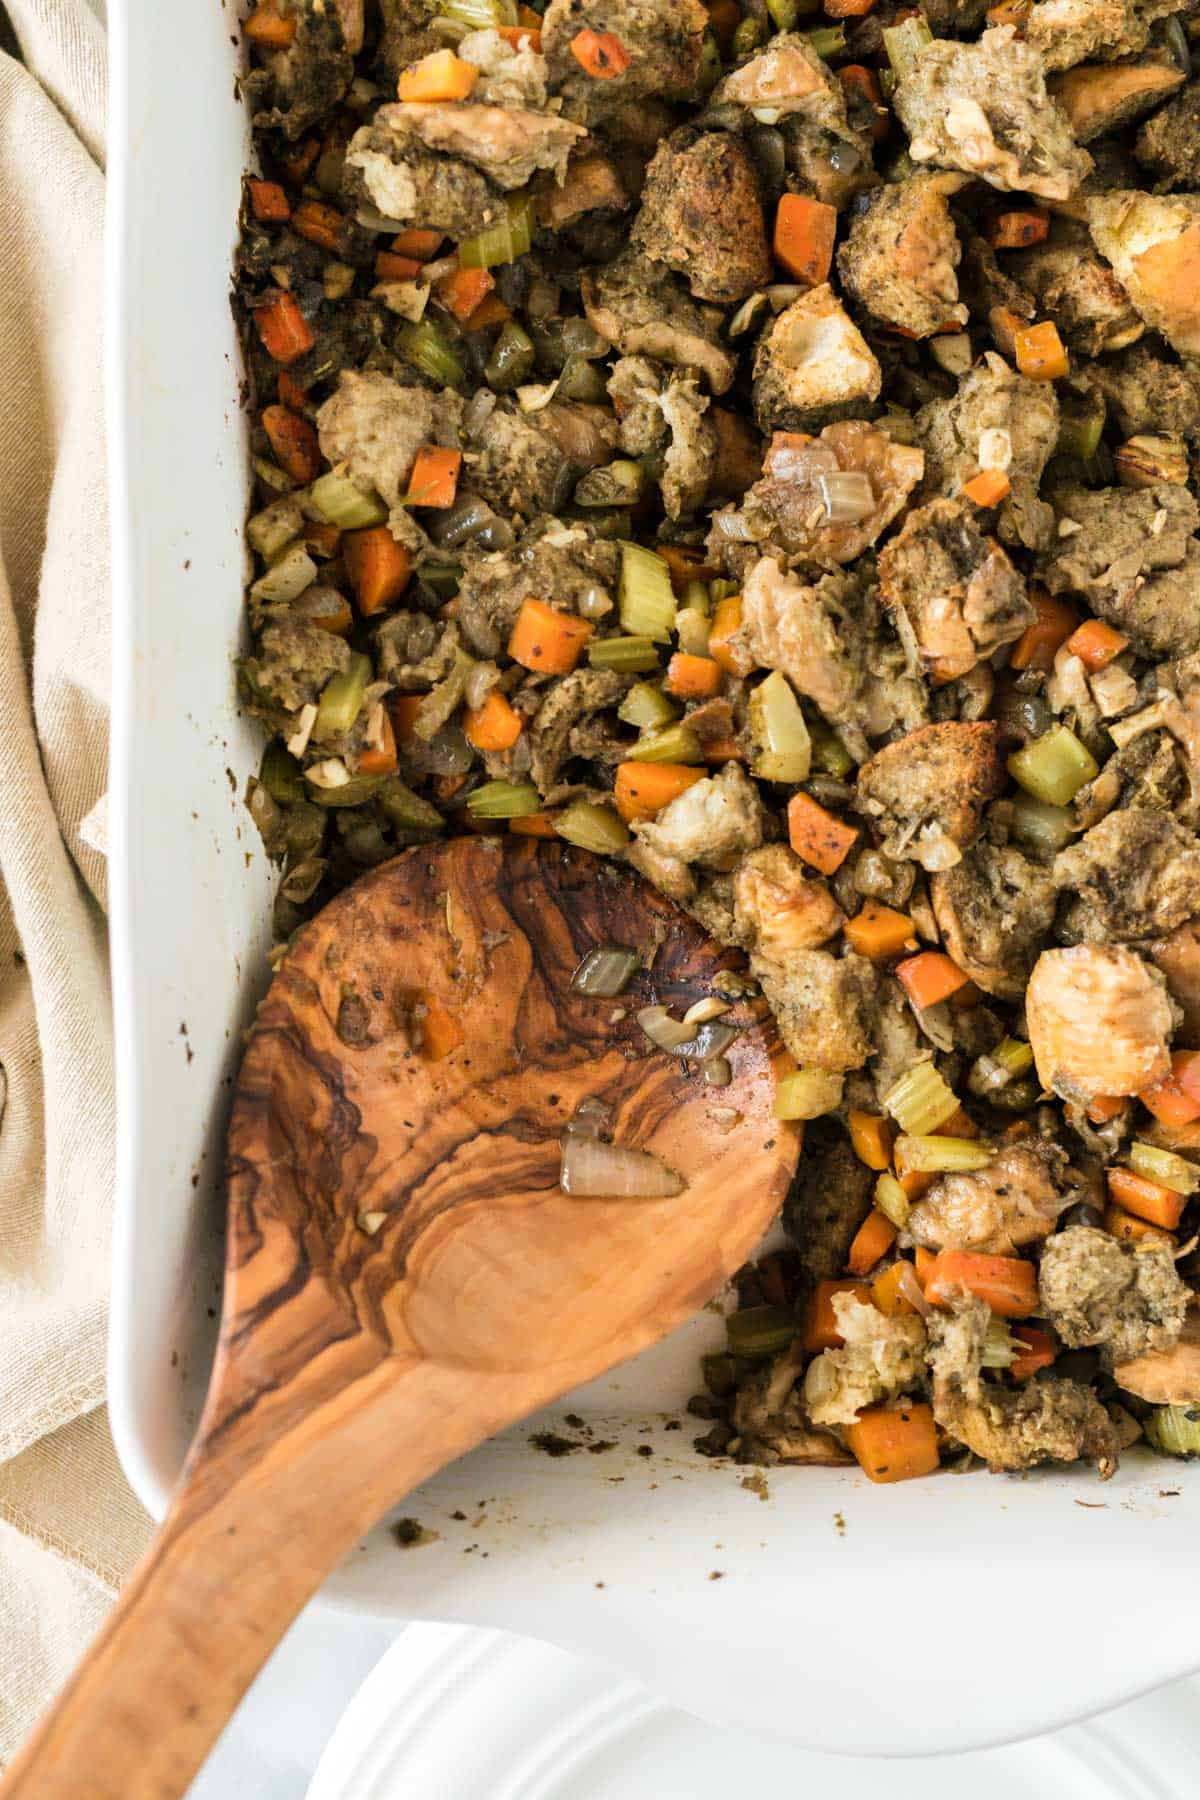 wooden spoon in a dish of vegan stuffing